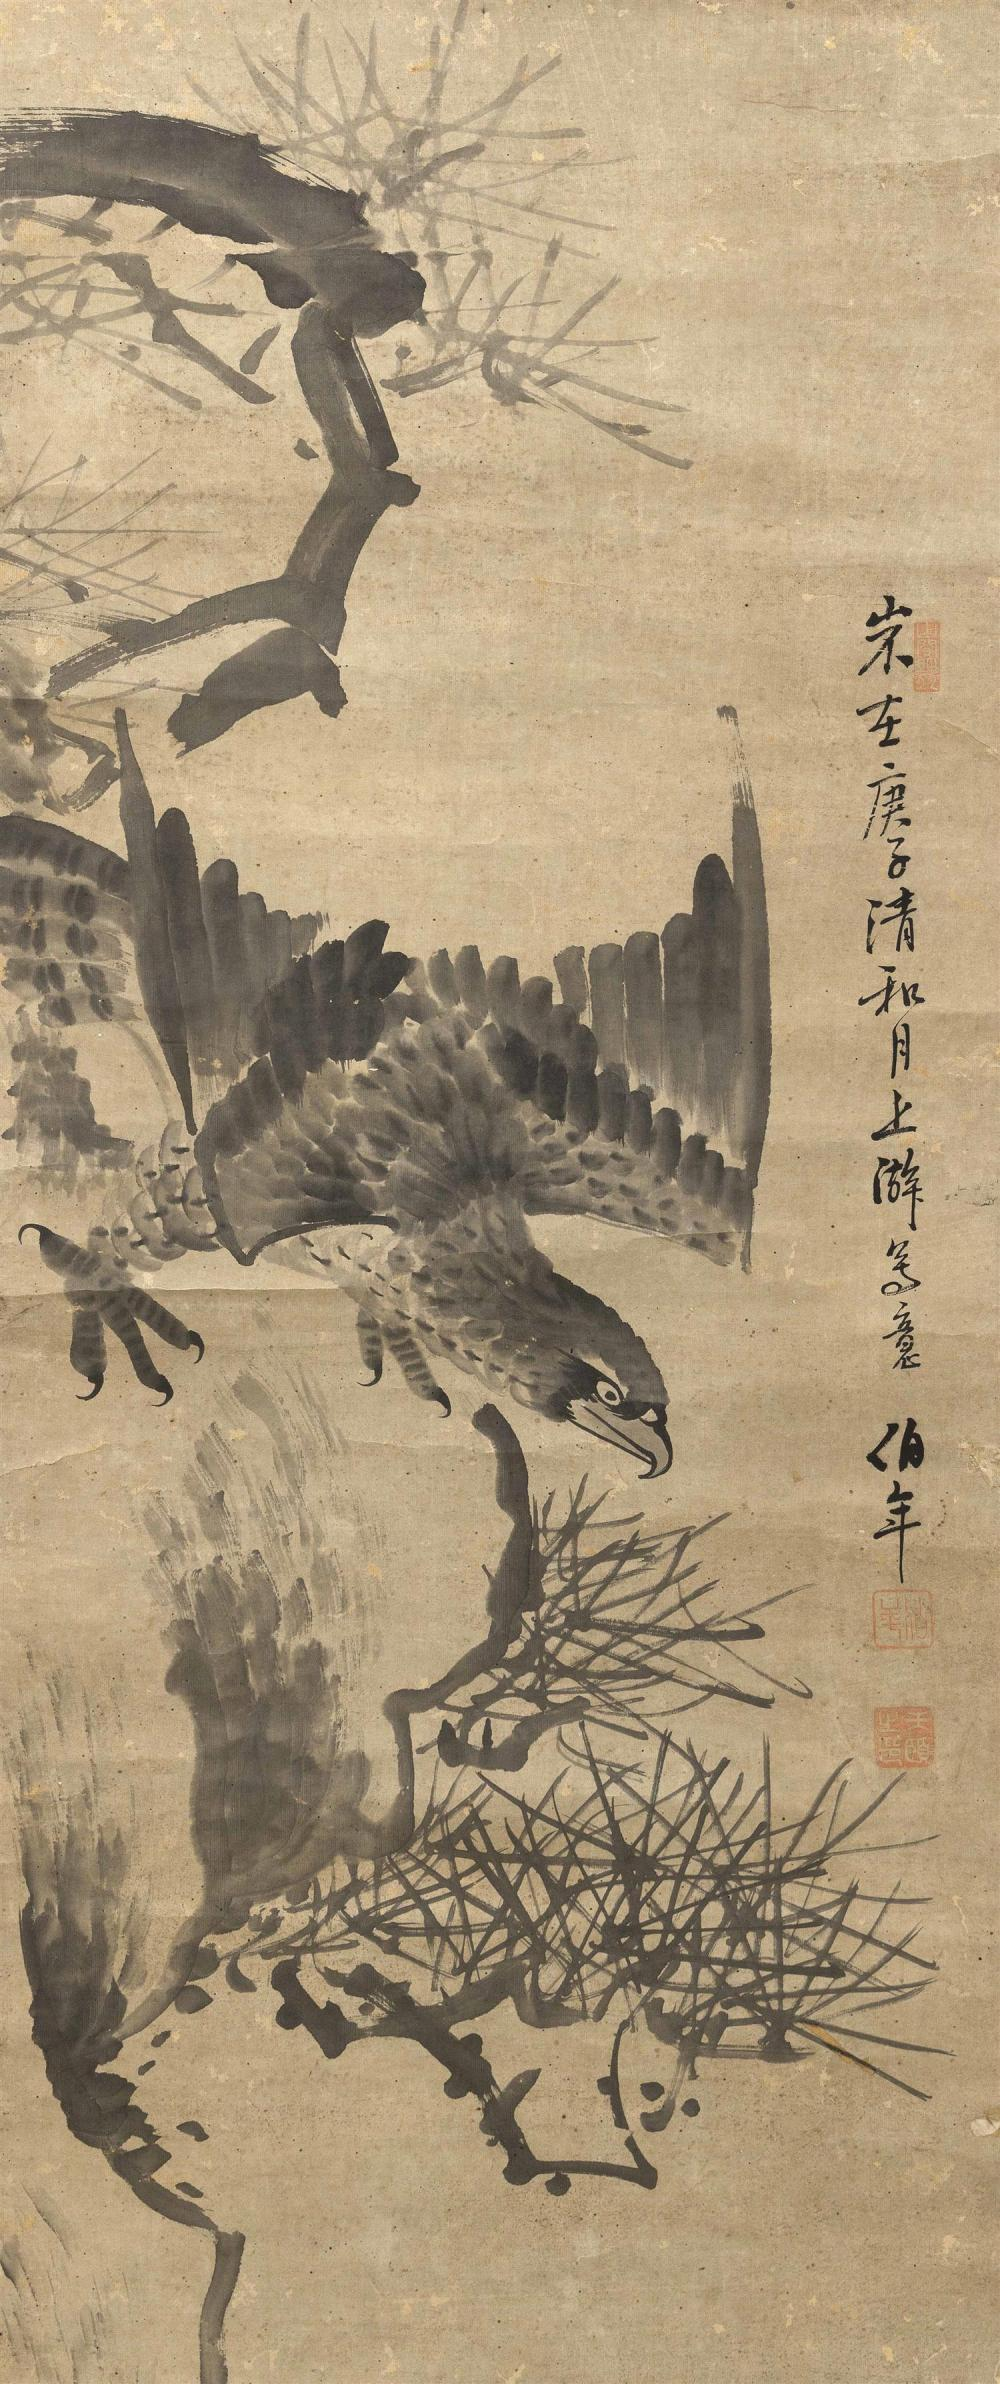 JAPANESE KANO SCHOOL SCROLL PAINTING ON PAPER Depicts a hawk in a pine tree. Marked with extensive calligraphy and three seal marks....